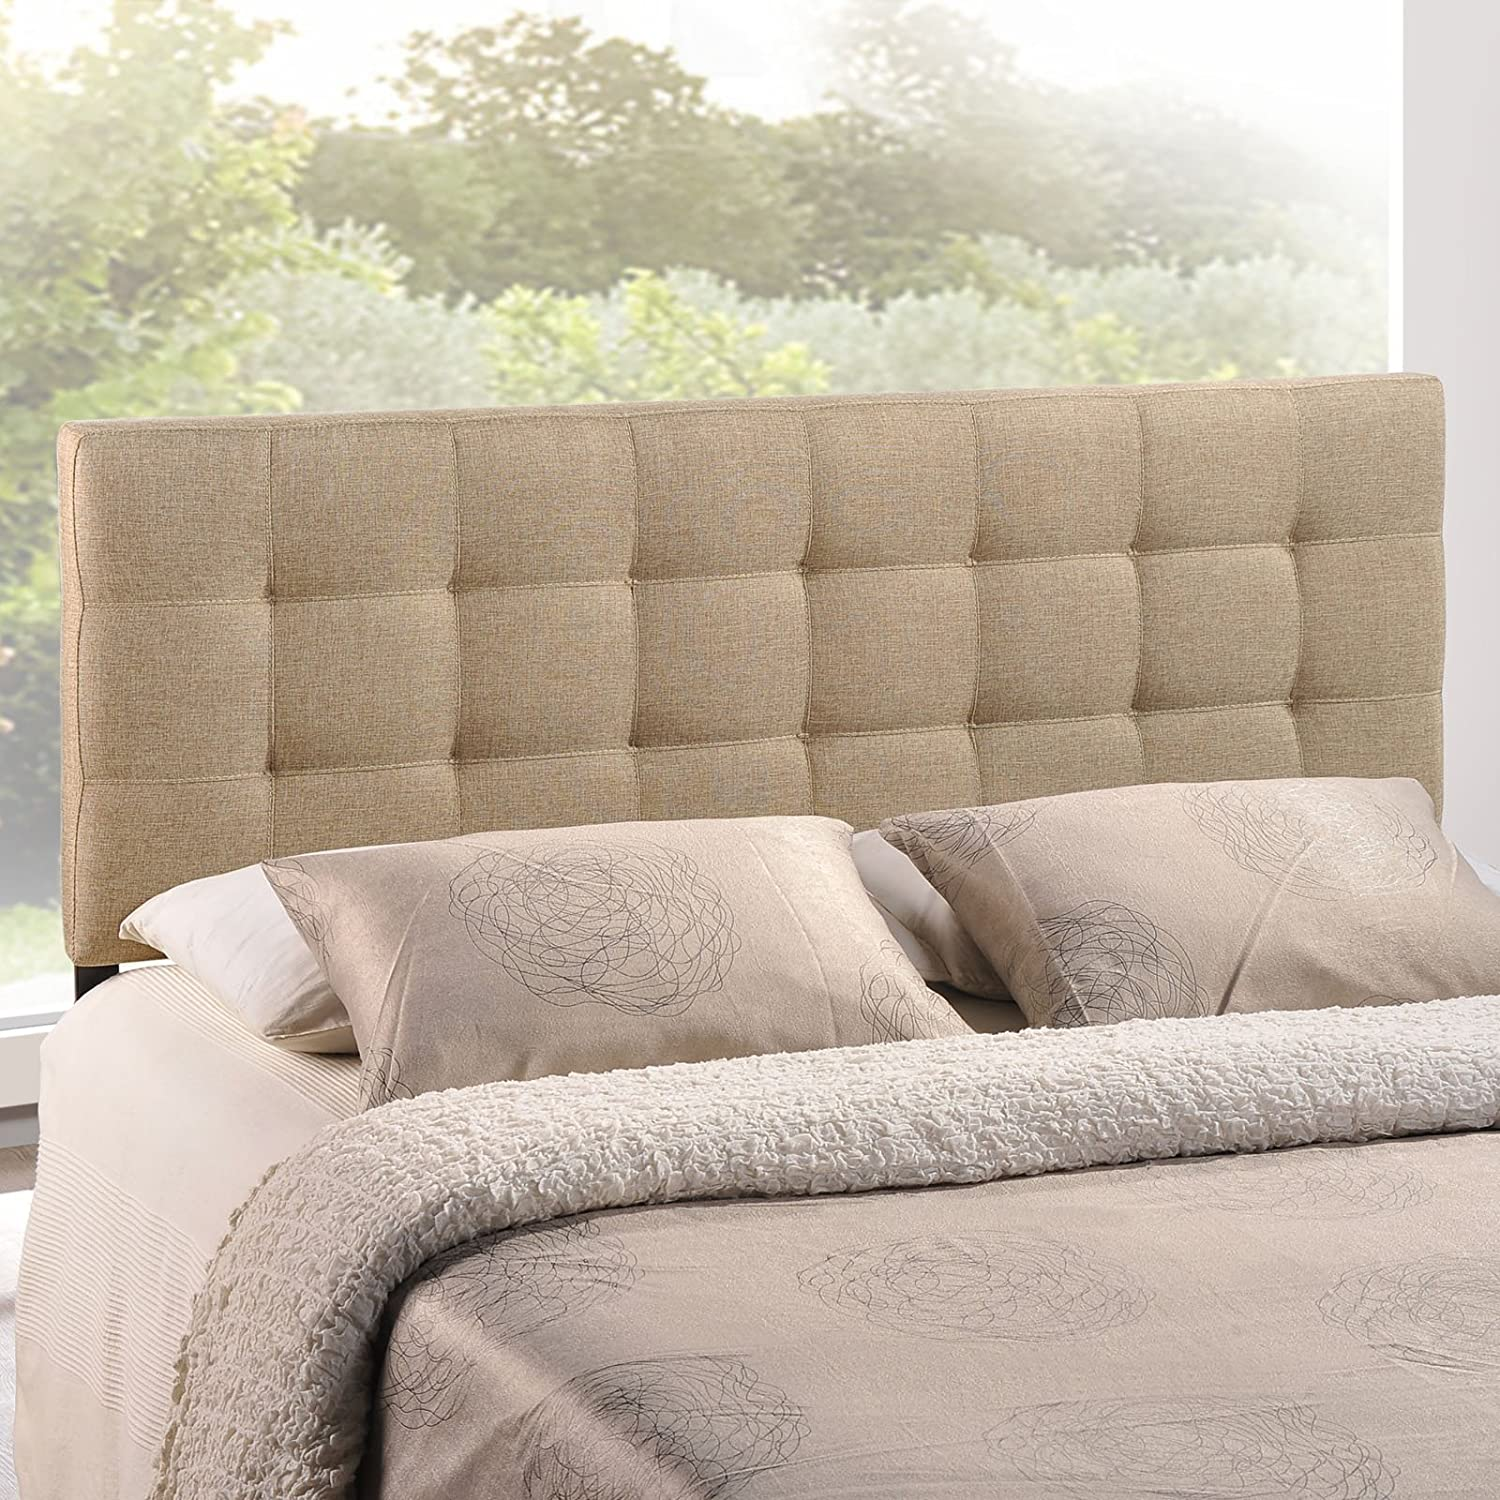 queen upholstered langria full linen products tufted headboard button